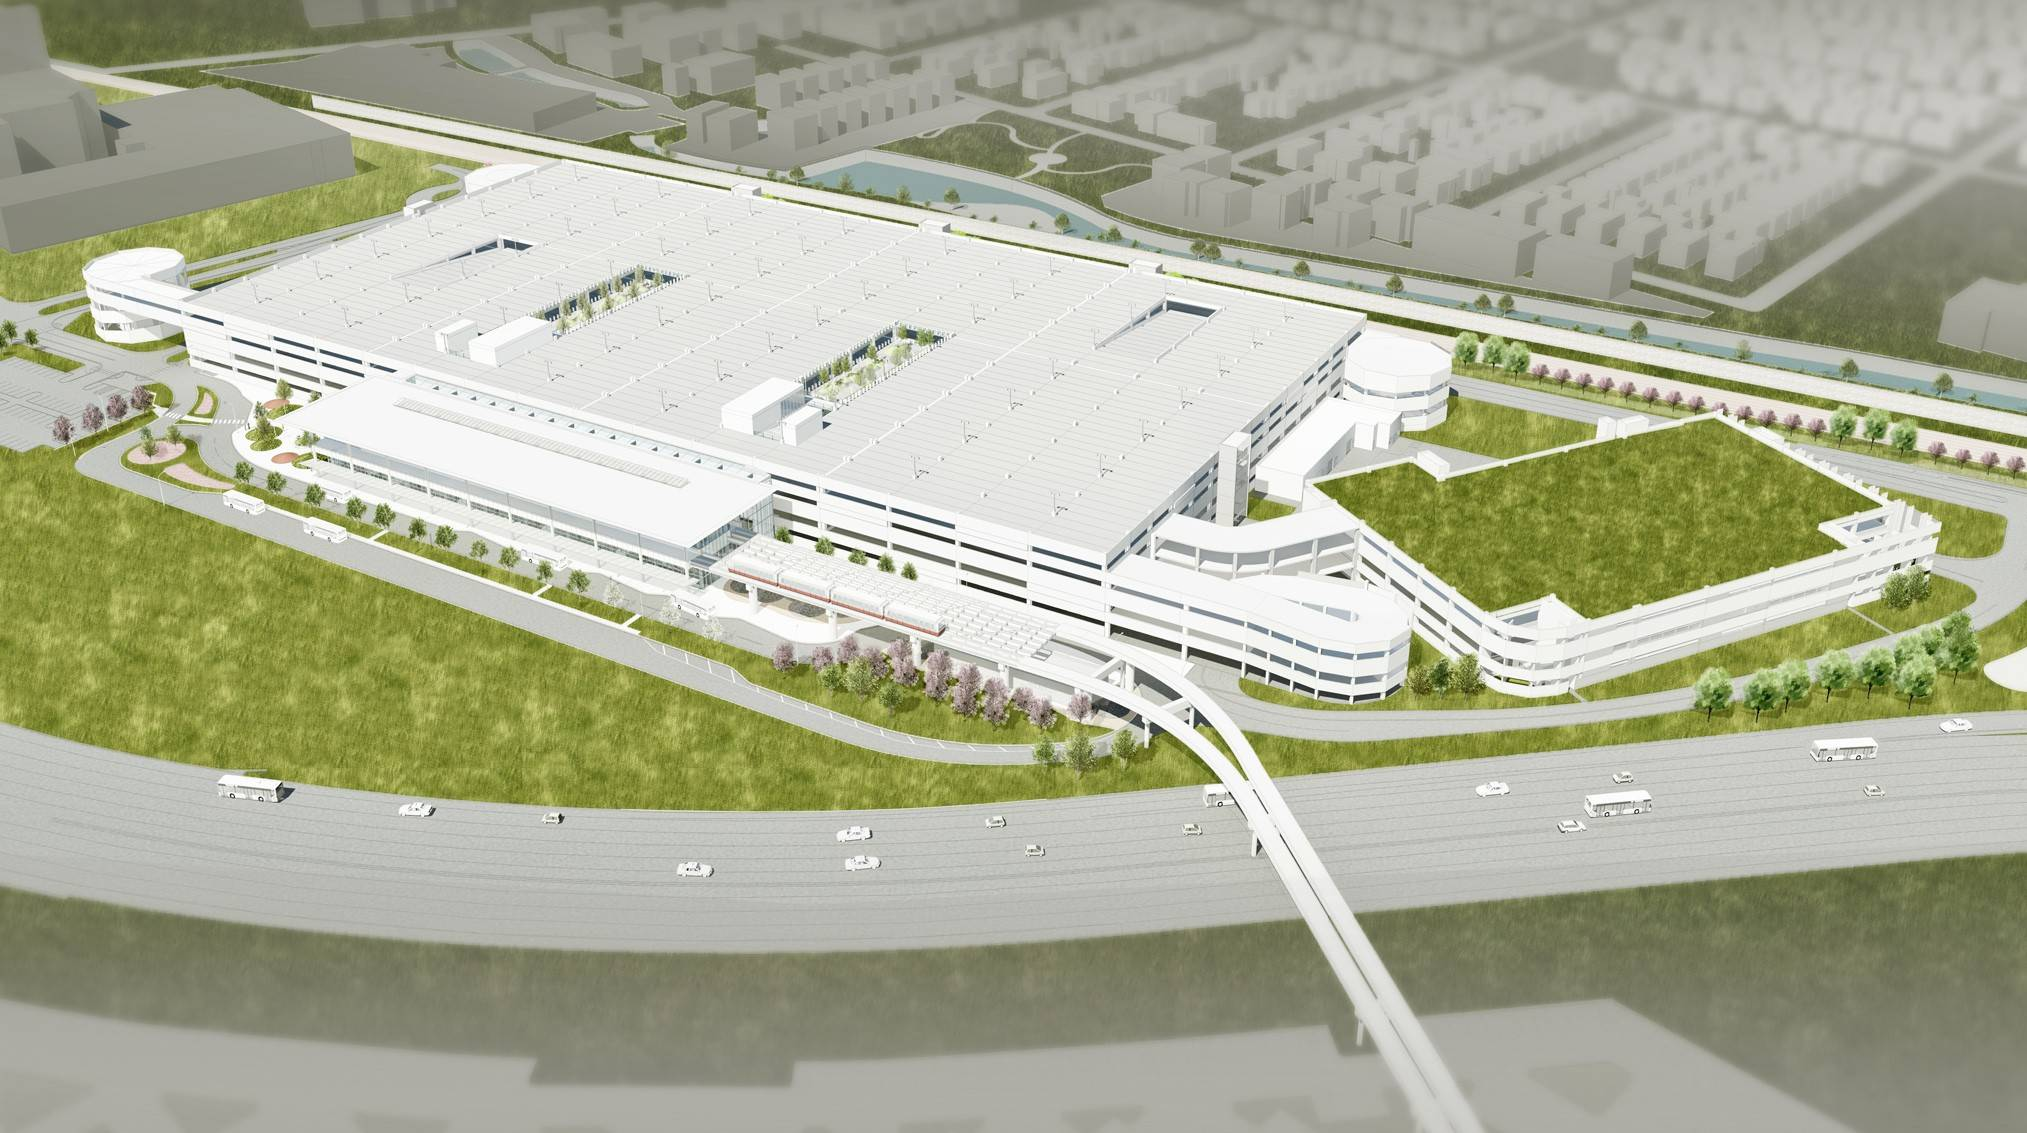 A new parking structure will take the place of Parking Lot F at O'Hare.